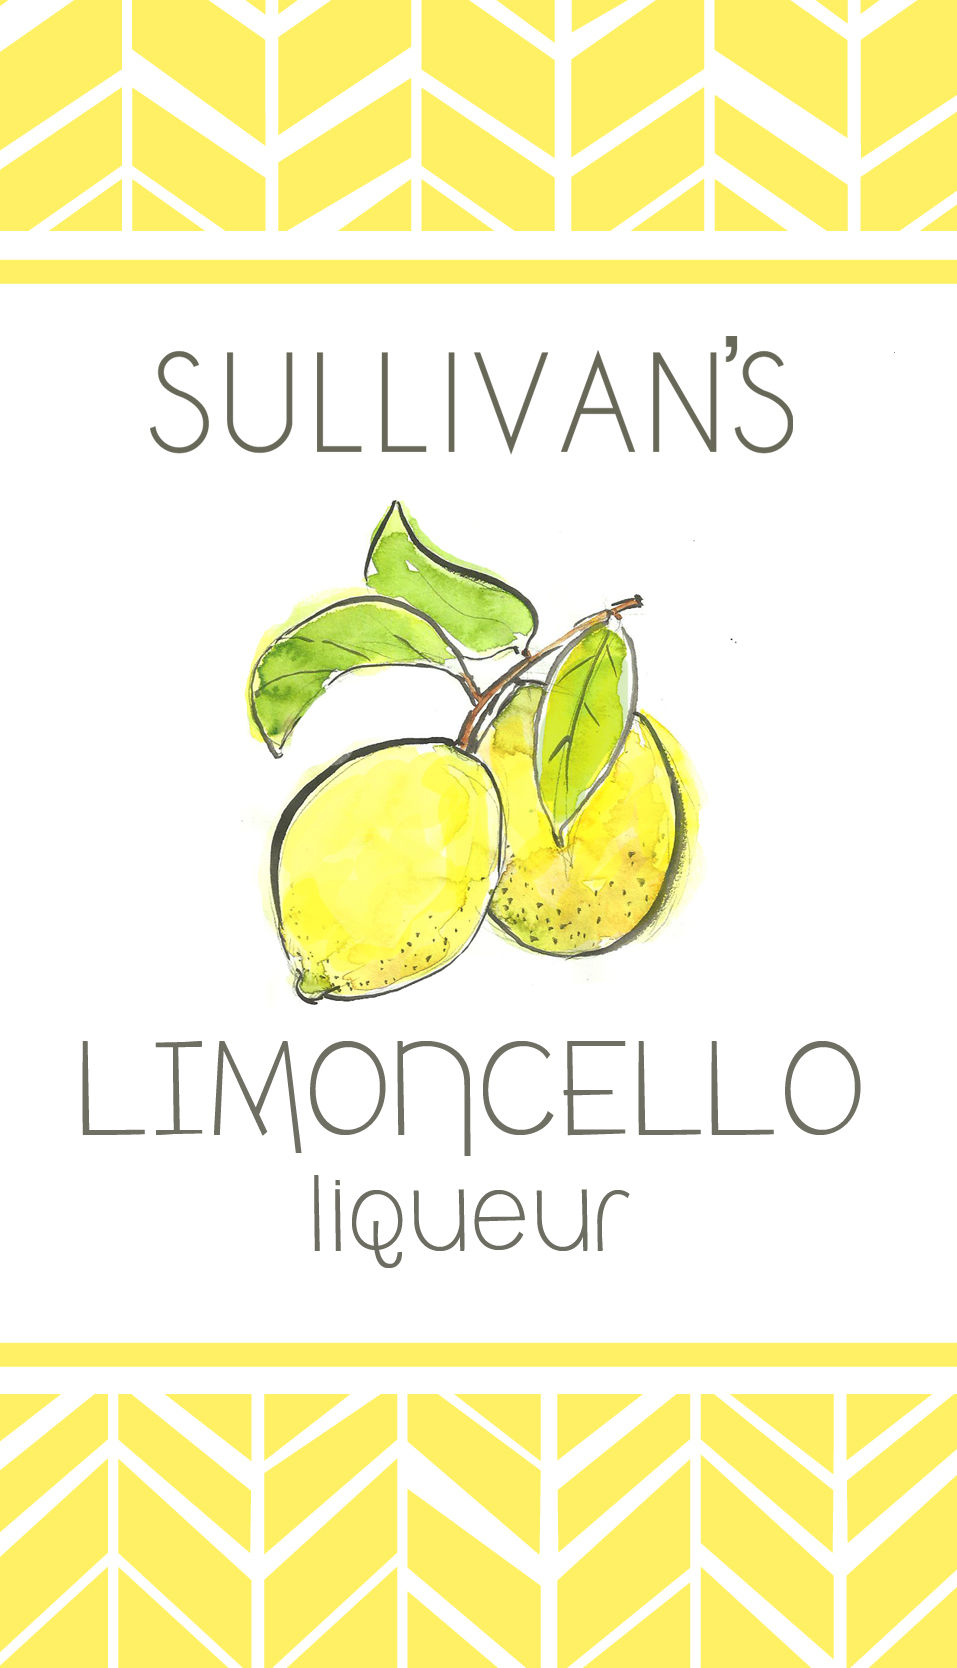 limoncello_new.jpg